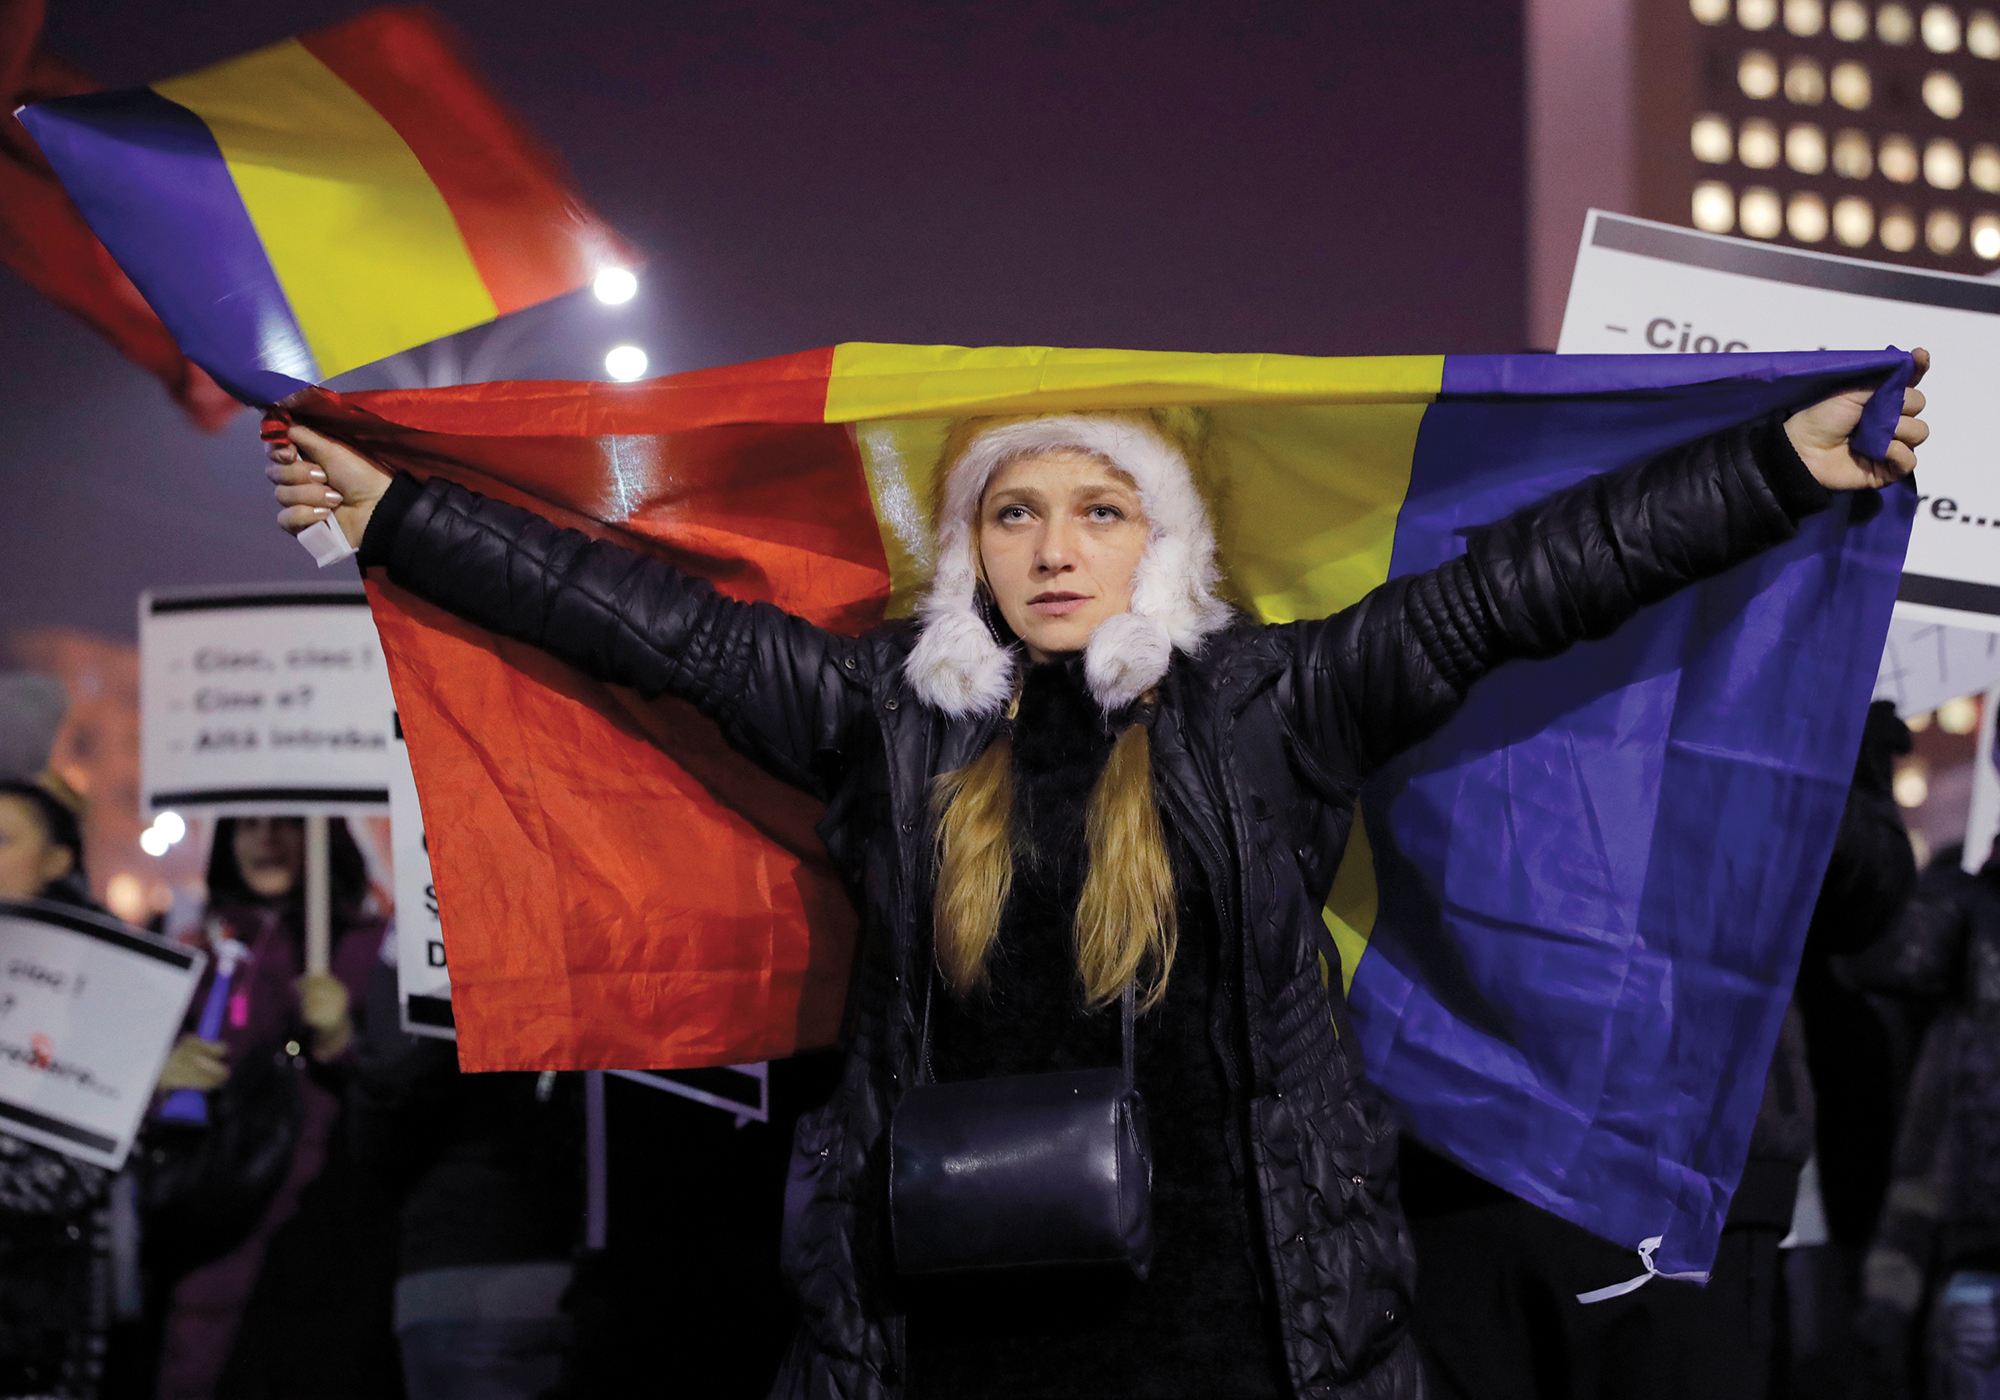 In February, 2017, twenty-eight years after Romanians toppled their dictatorship, protestors took to the streets again in the name of democracy, this time to fight a decree seen as soft on government corruption. AP Photo/Vadim Ghirda